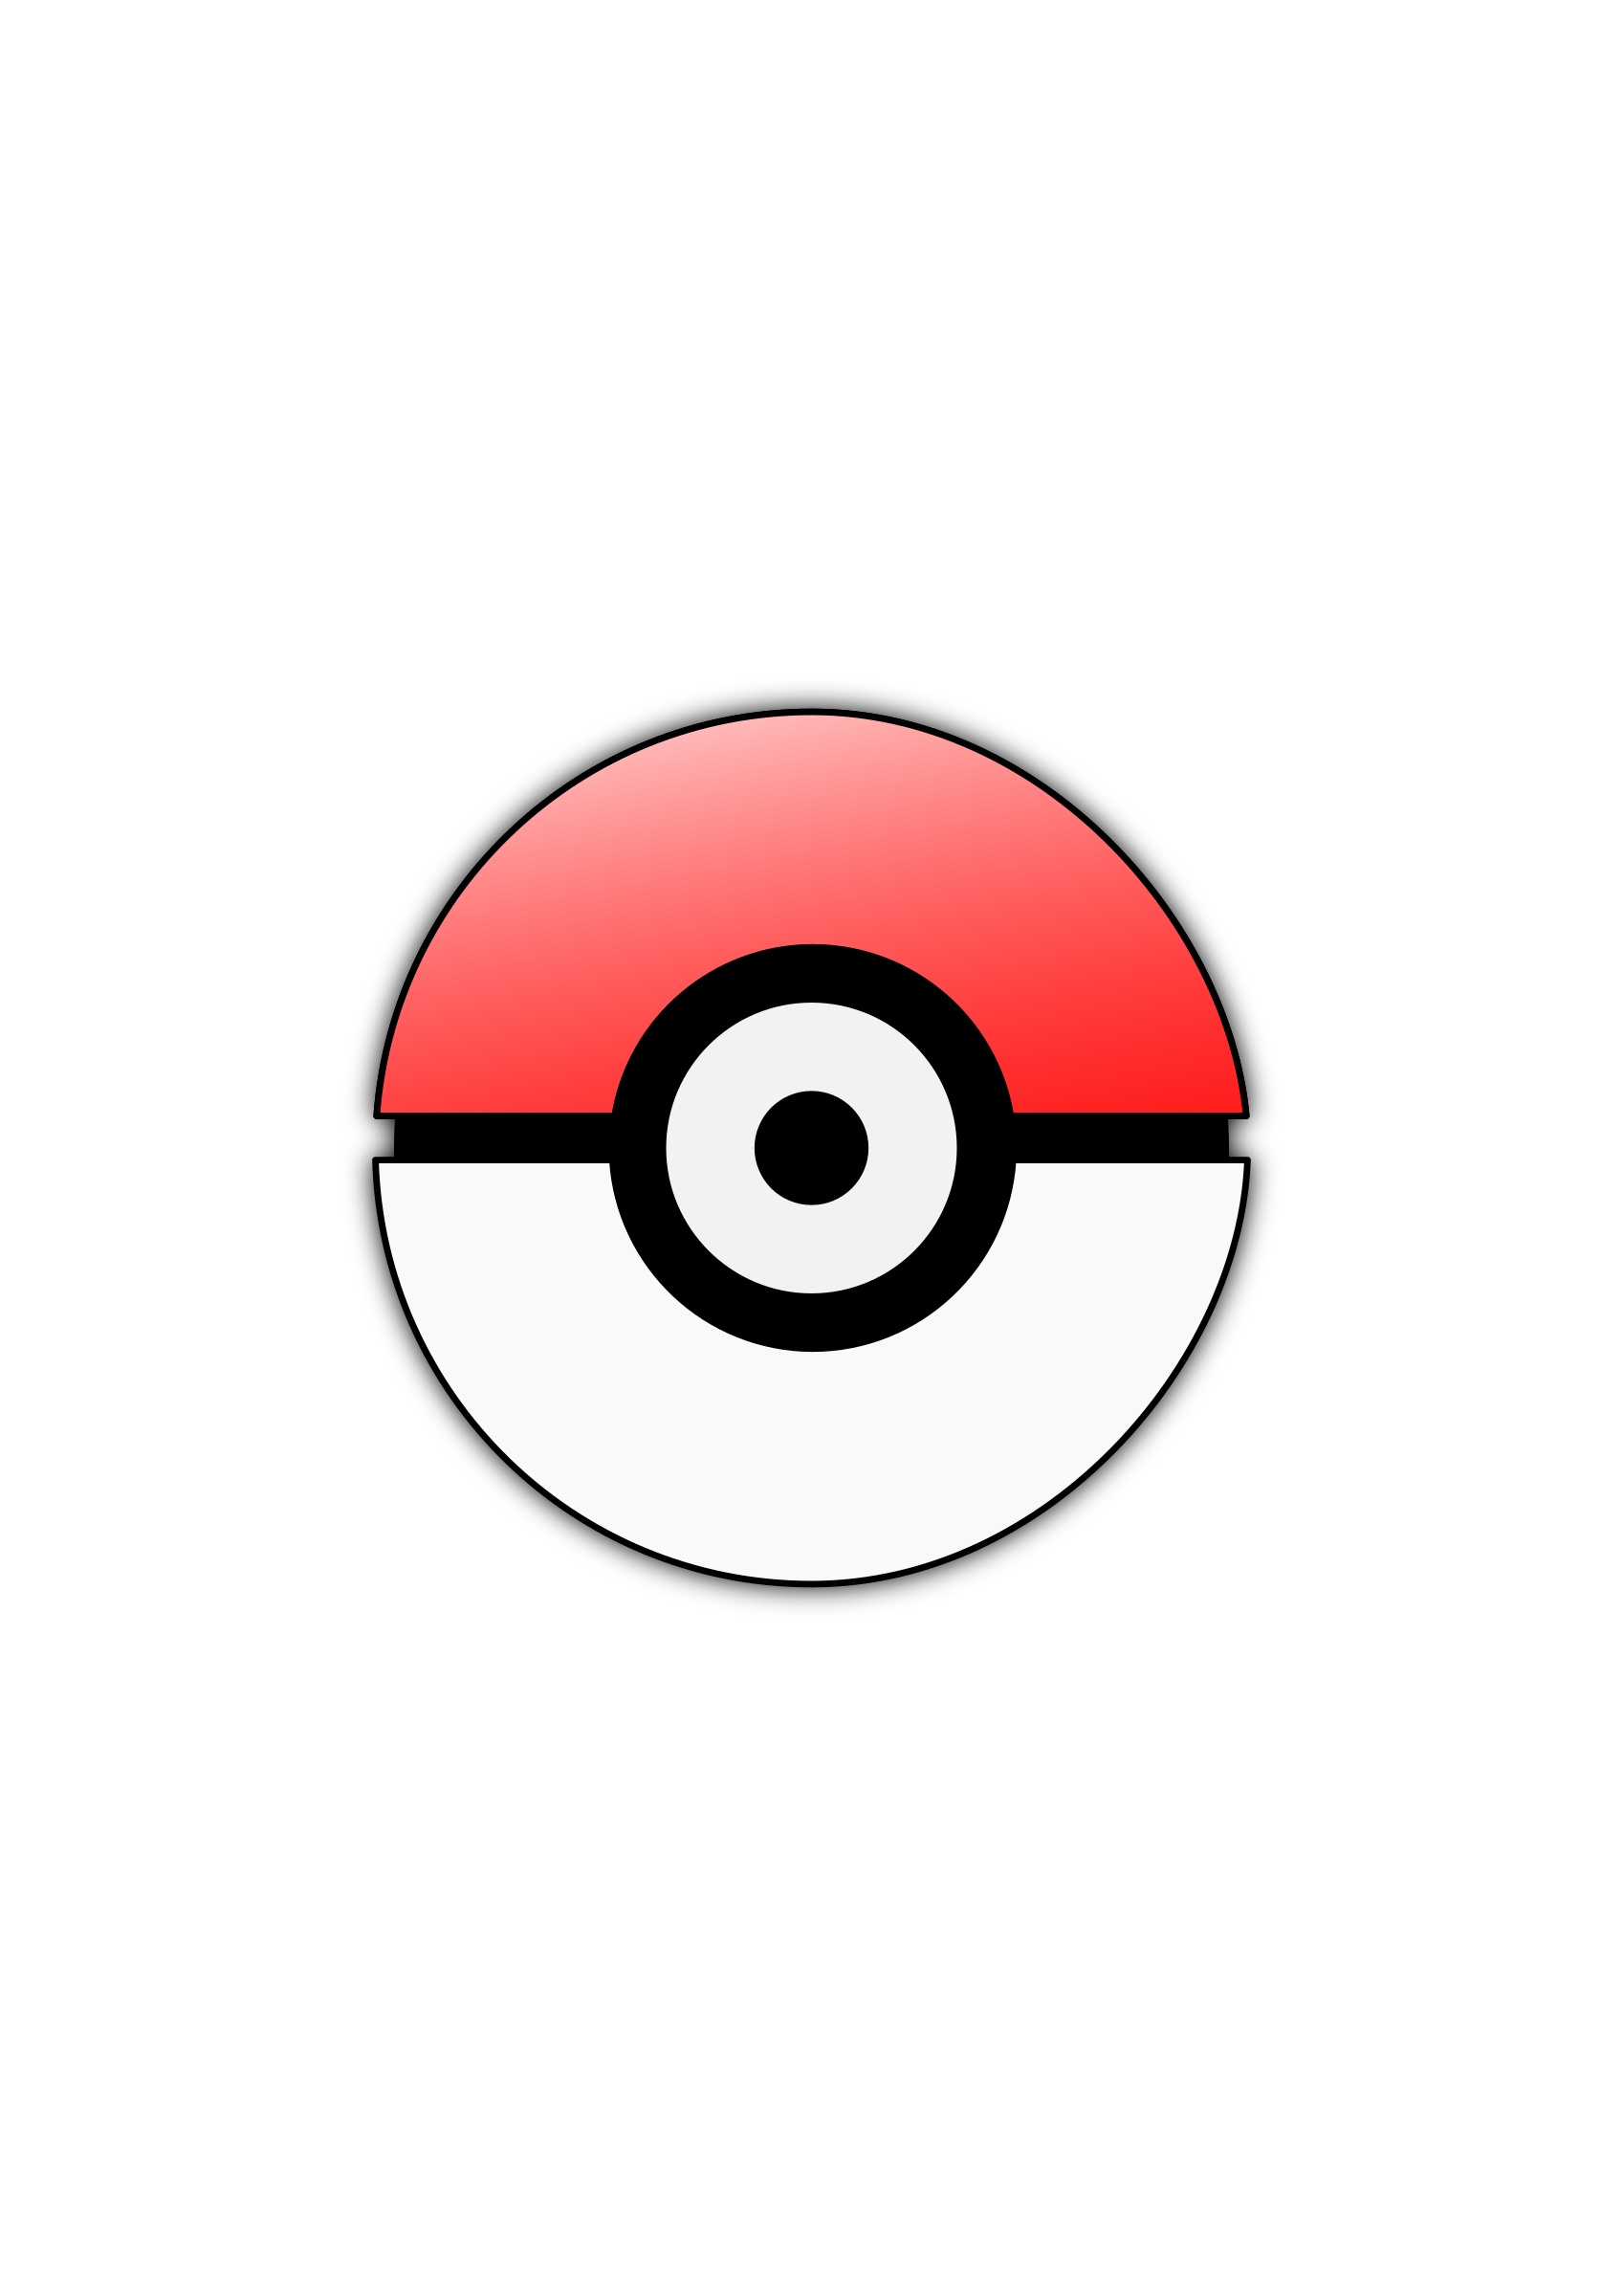 Pokeball clipart Clipart Pokeball Pokeball